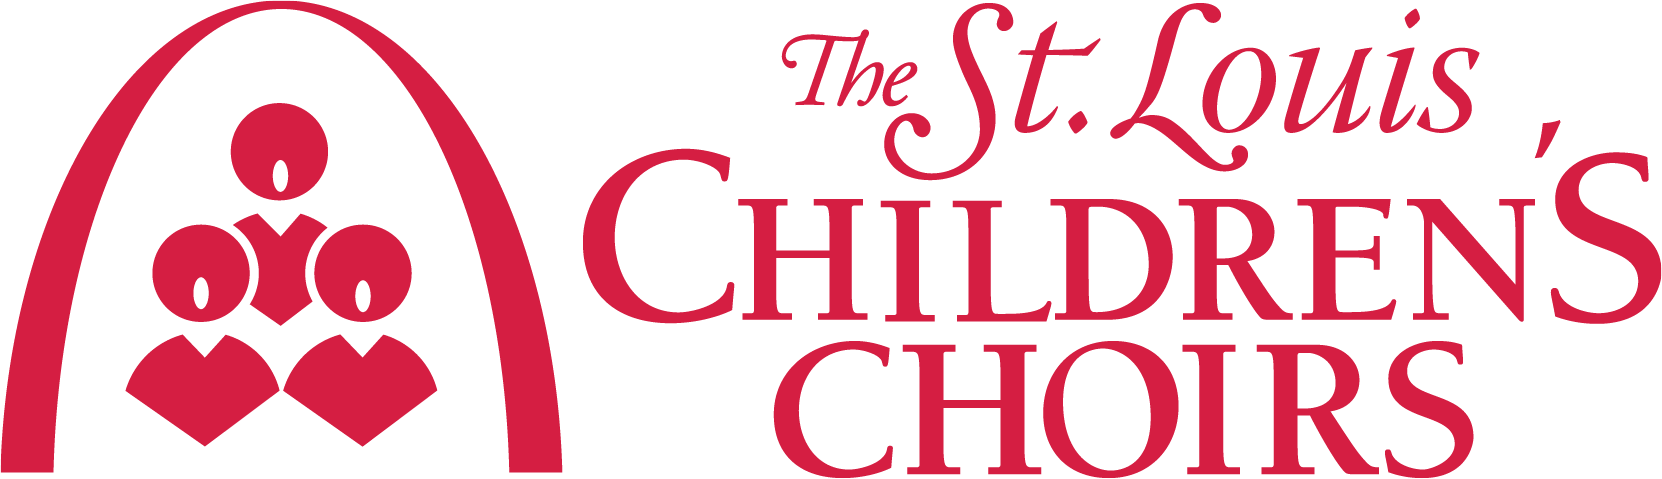 The Saint Louis Children's Choirs White Logo